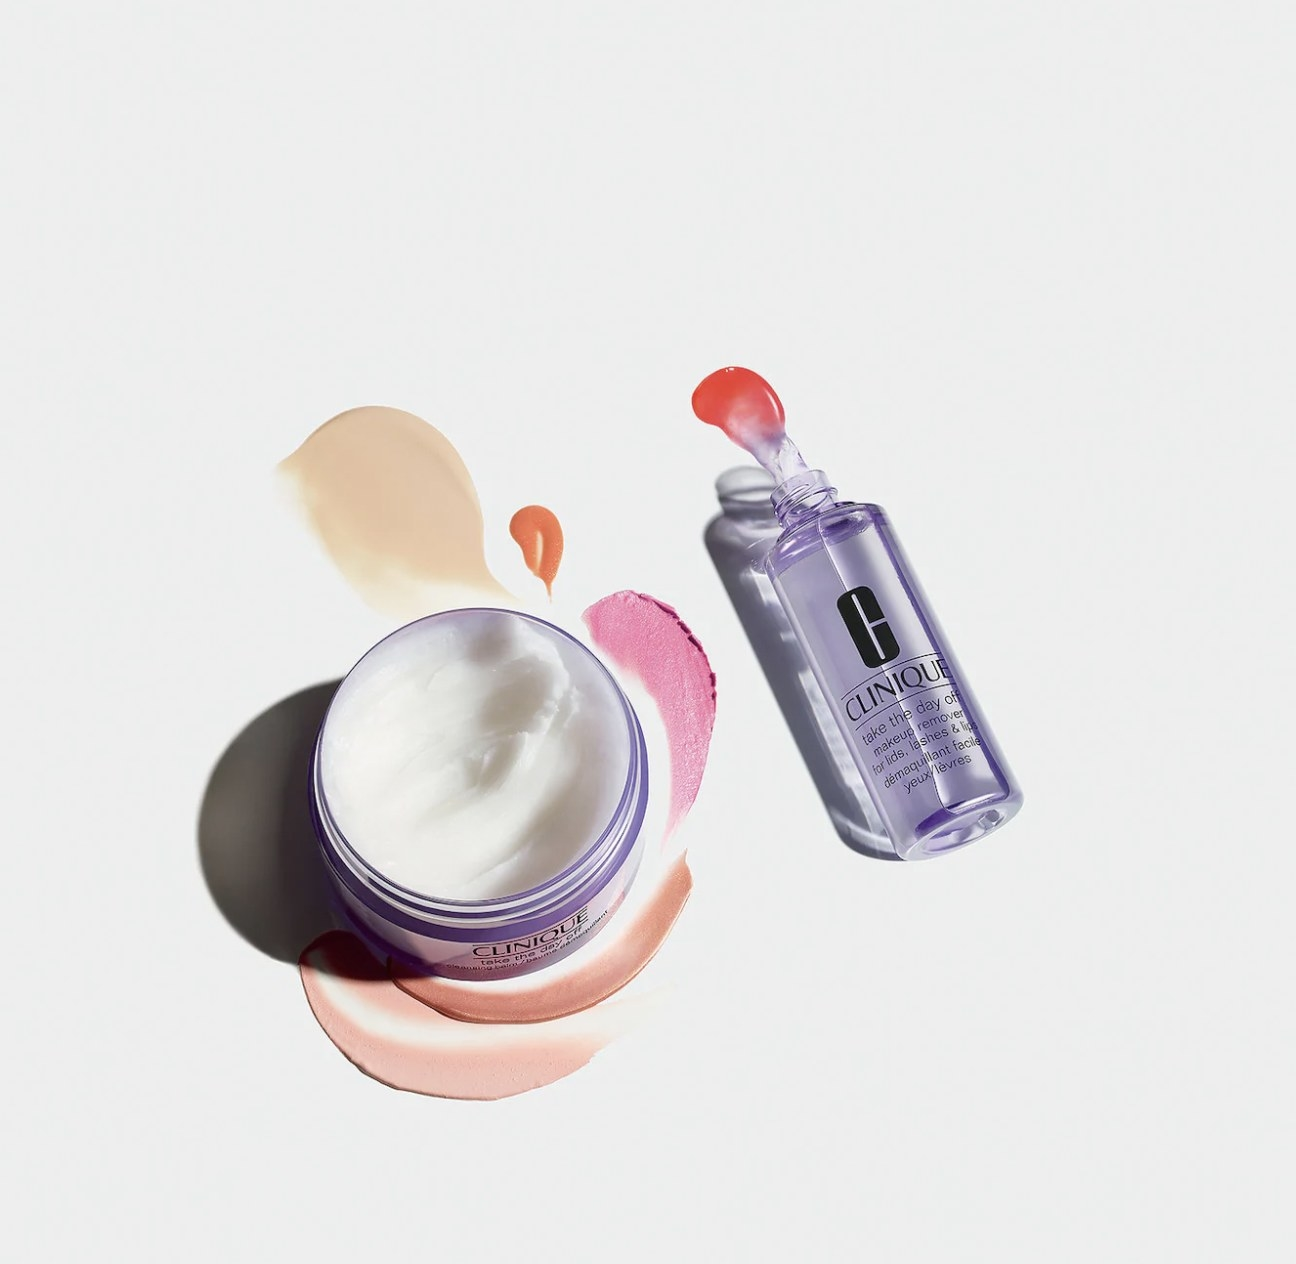 A jar of cleansing balm and a bottle of makeup remover